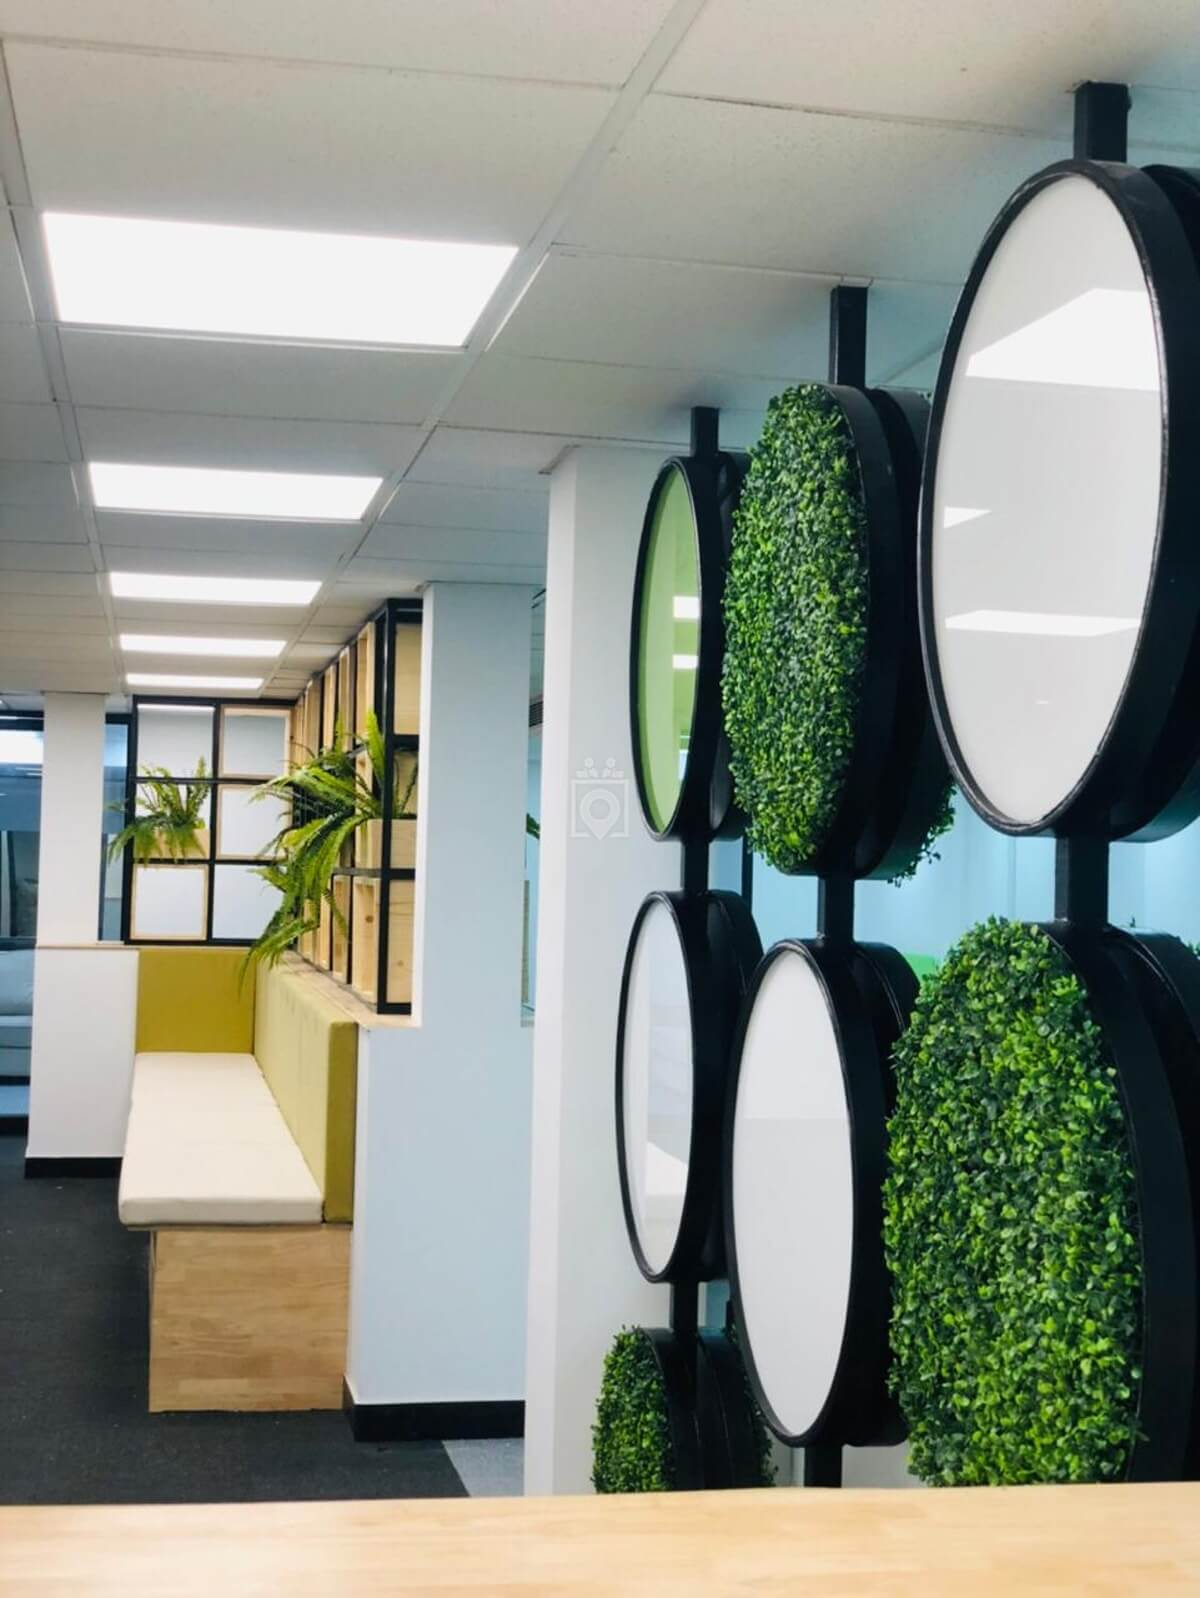 TwoTrees Workspaces| Bookofficenow